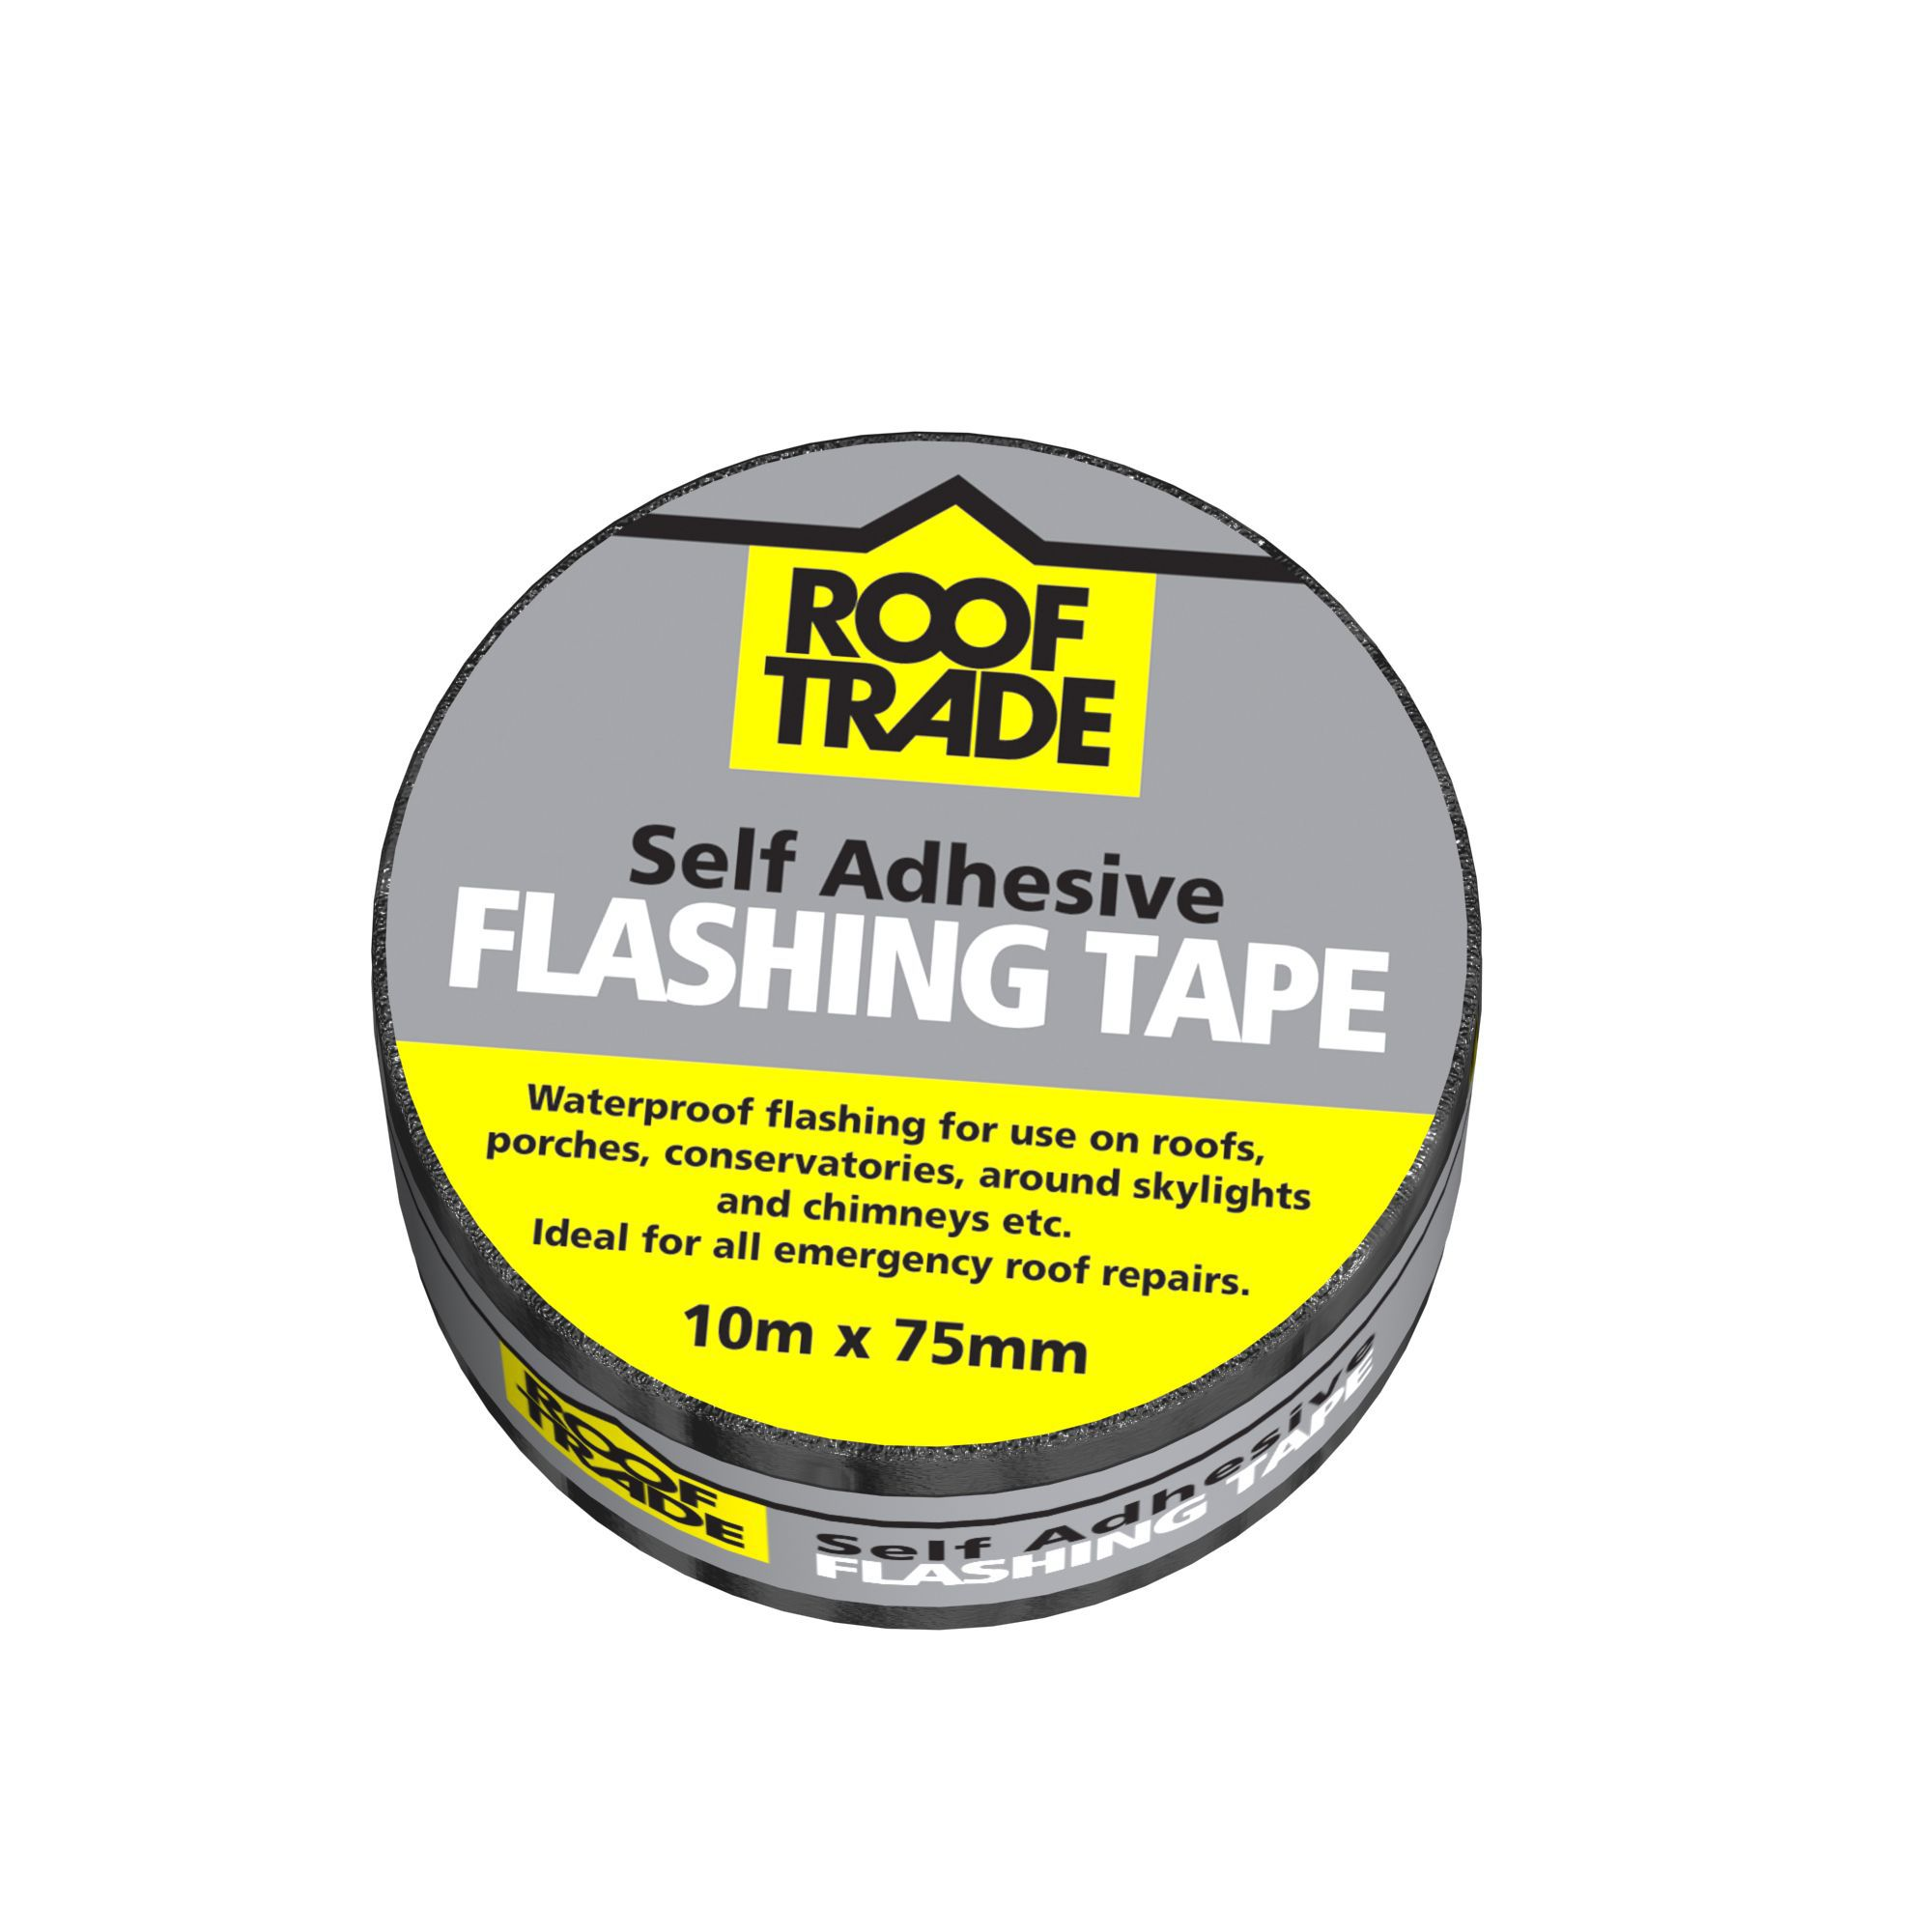 Evo-stik Rooftrade Grey Flashing Tape (l)10m (w)75mm